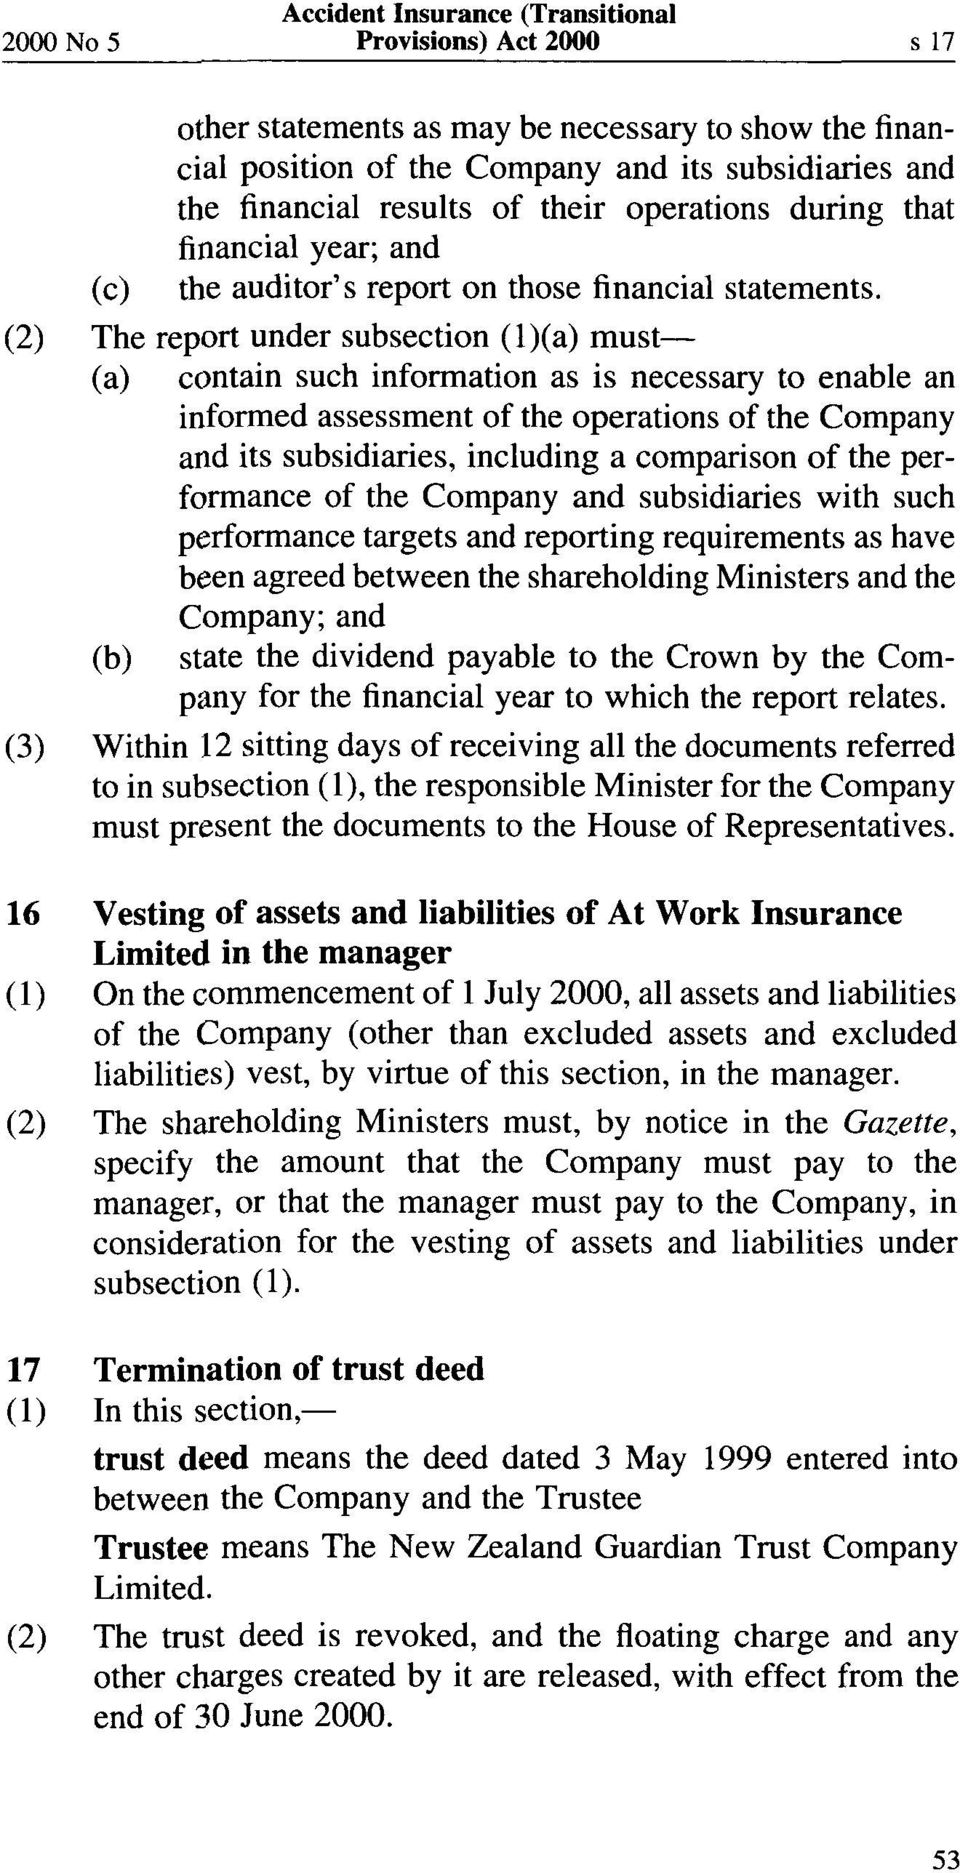 (C) (2) The report under subsection (1)(a) must- (a) (b) contain such information as is necessary to enable an informed assessment of the operations of the Company and its subsidiaries, including a